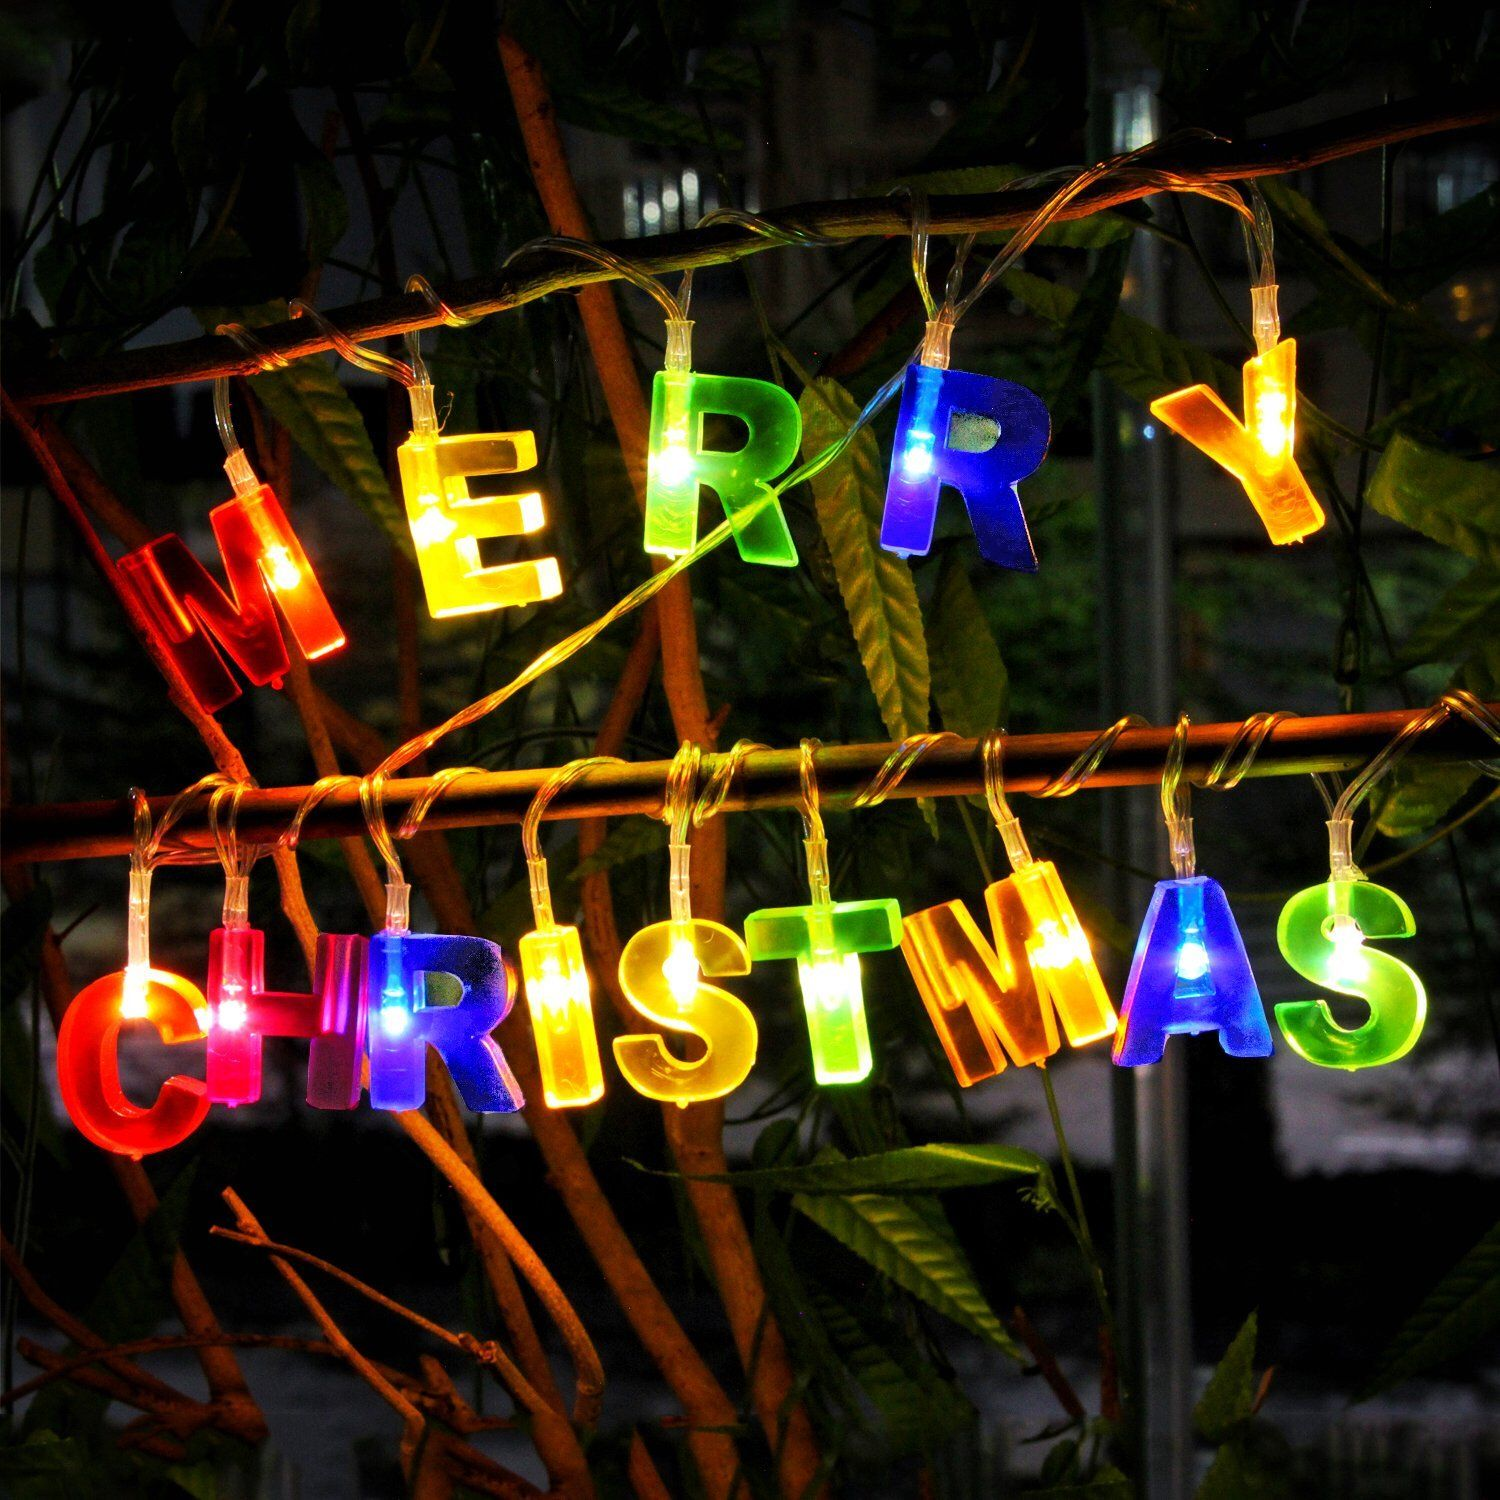 Merry Christmas Lights 14 LED Letter Shaped Battery Operated